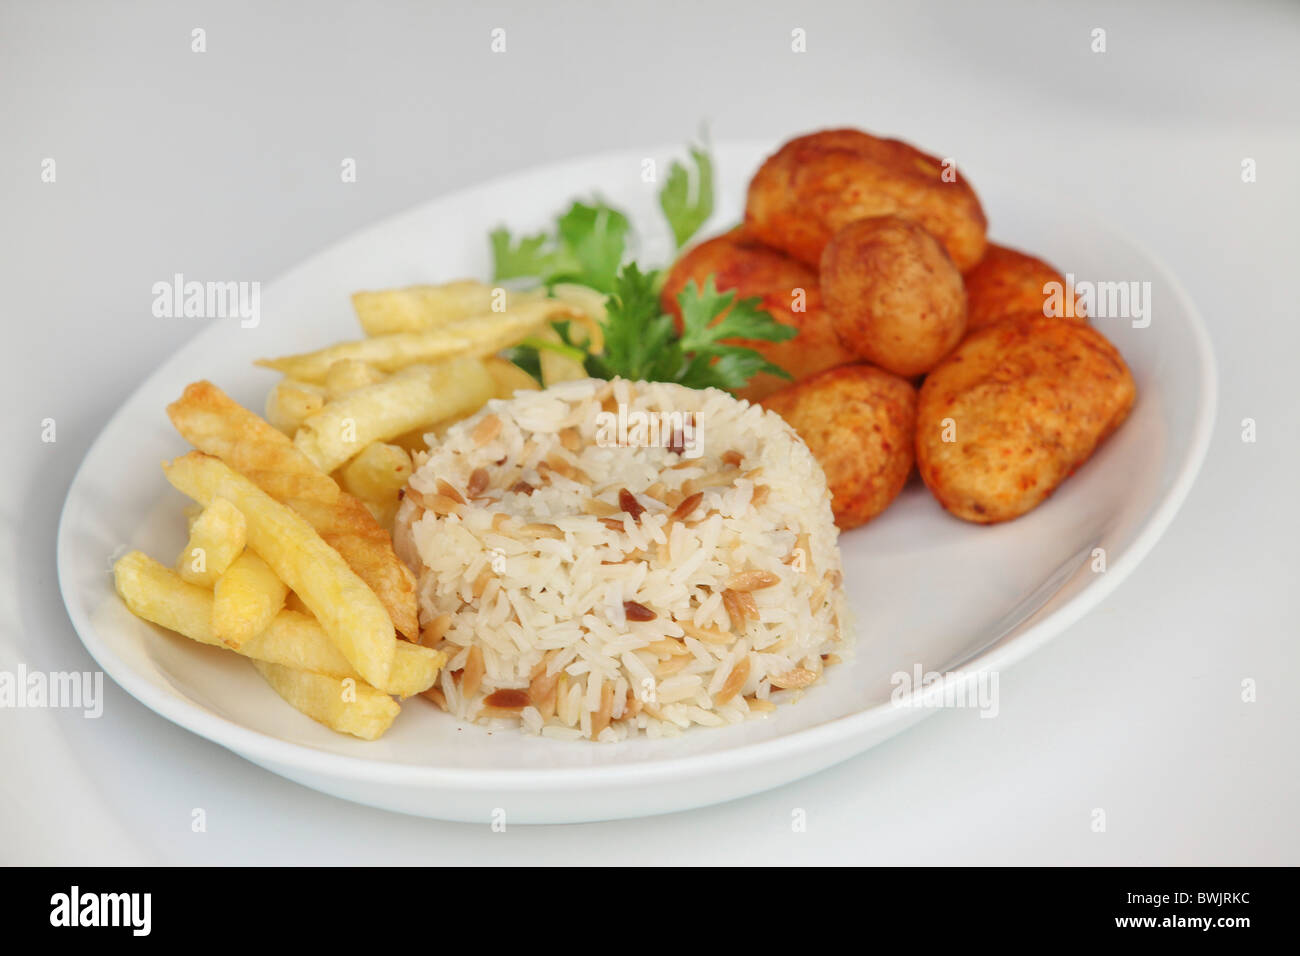 A plate of carbohydrates with baked potato rice and french fries - Stock Image